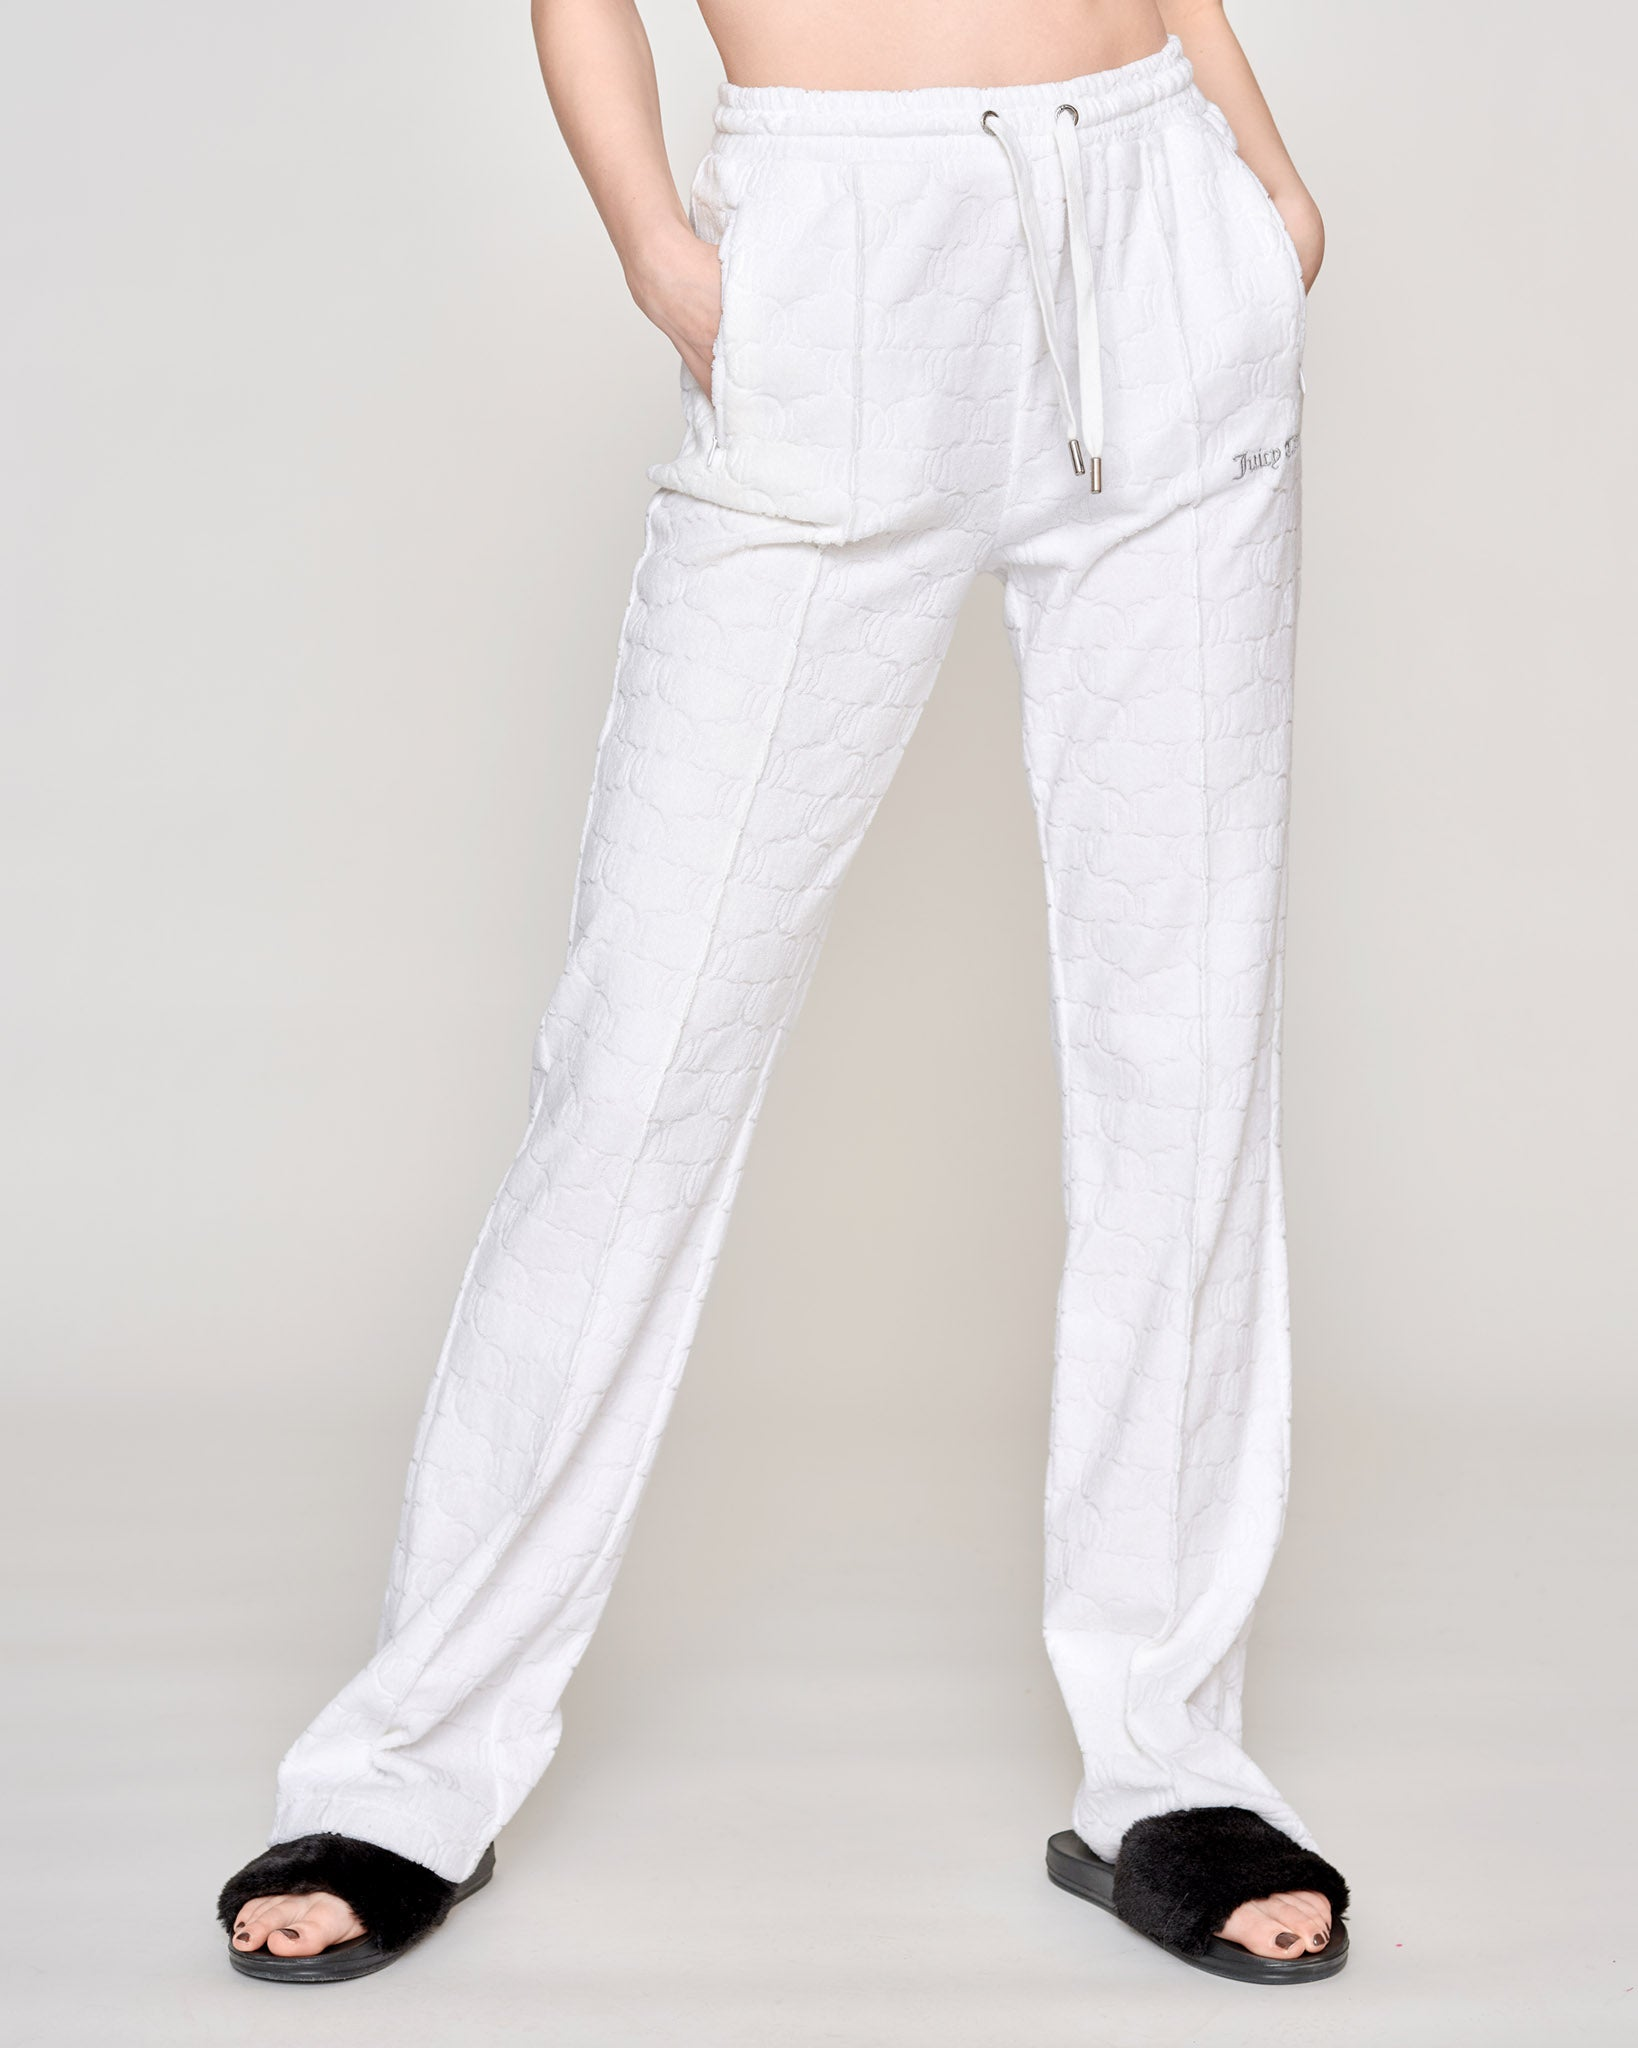 Tina Monogram Terry Towelling Pant White - Juicy Couture Scandinavia